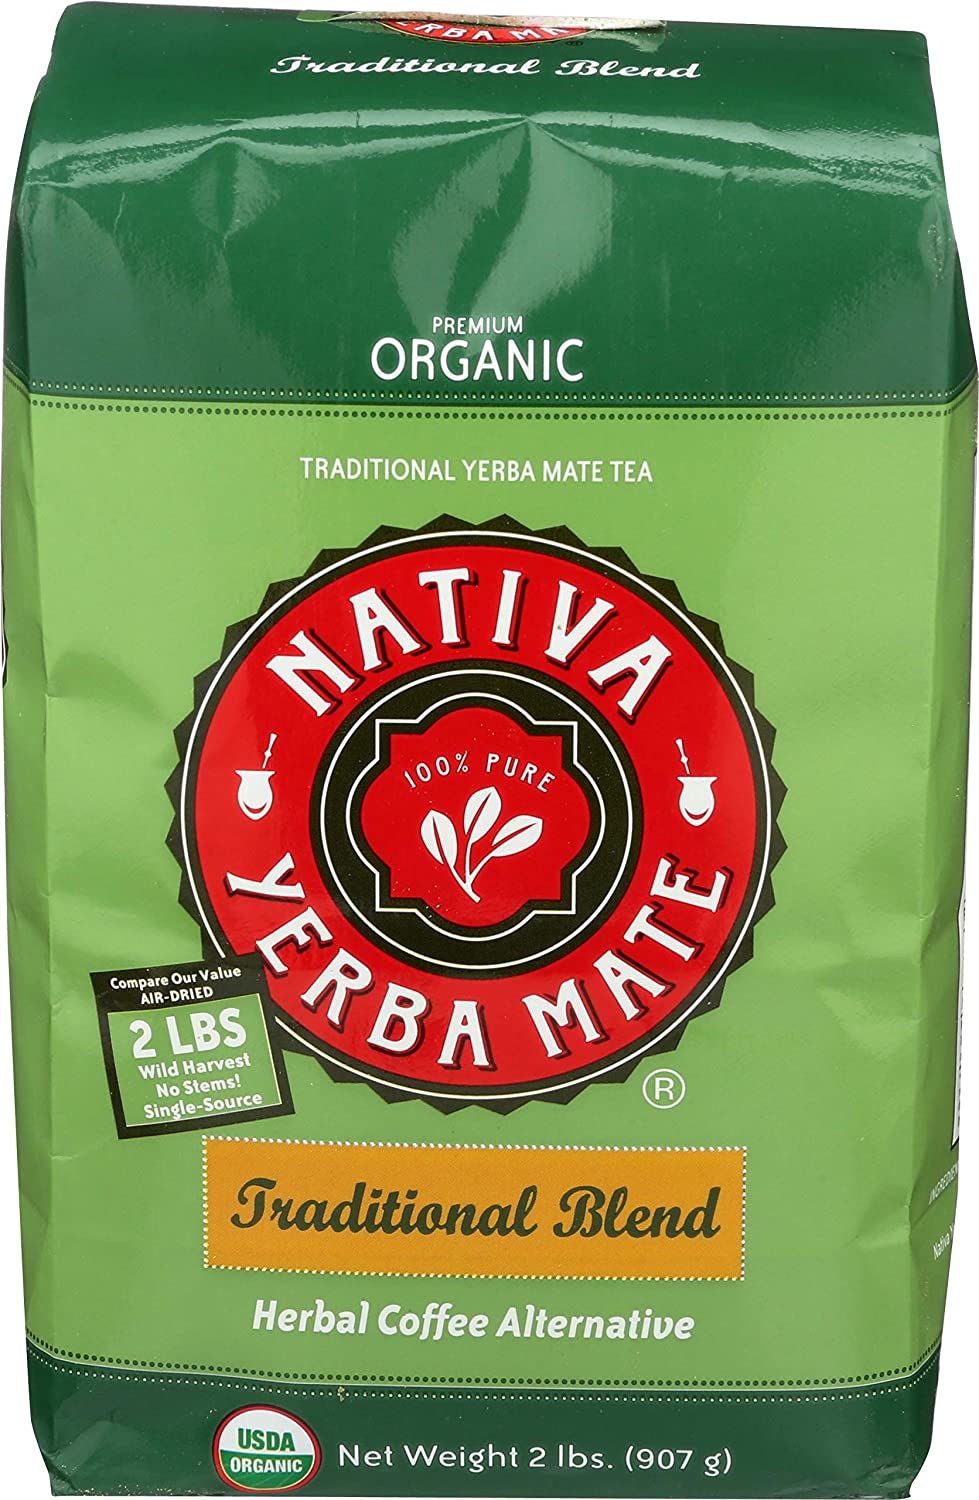 B01NCO5M5A Nativa Yerba Mate Wildcrafted Traditional Blend Pure Leaf Loose Yerba Mate Tea - 2lbs/32oz (2 Pack) 81D2BKfkE8vL